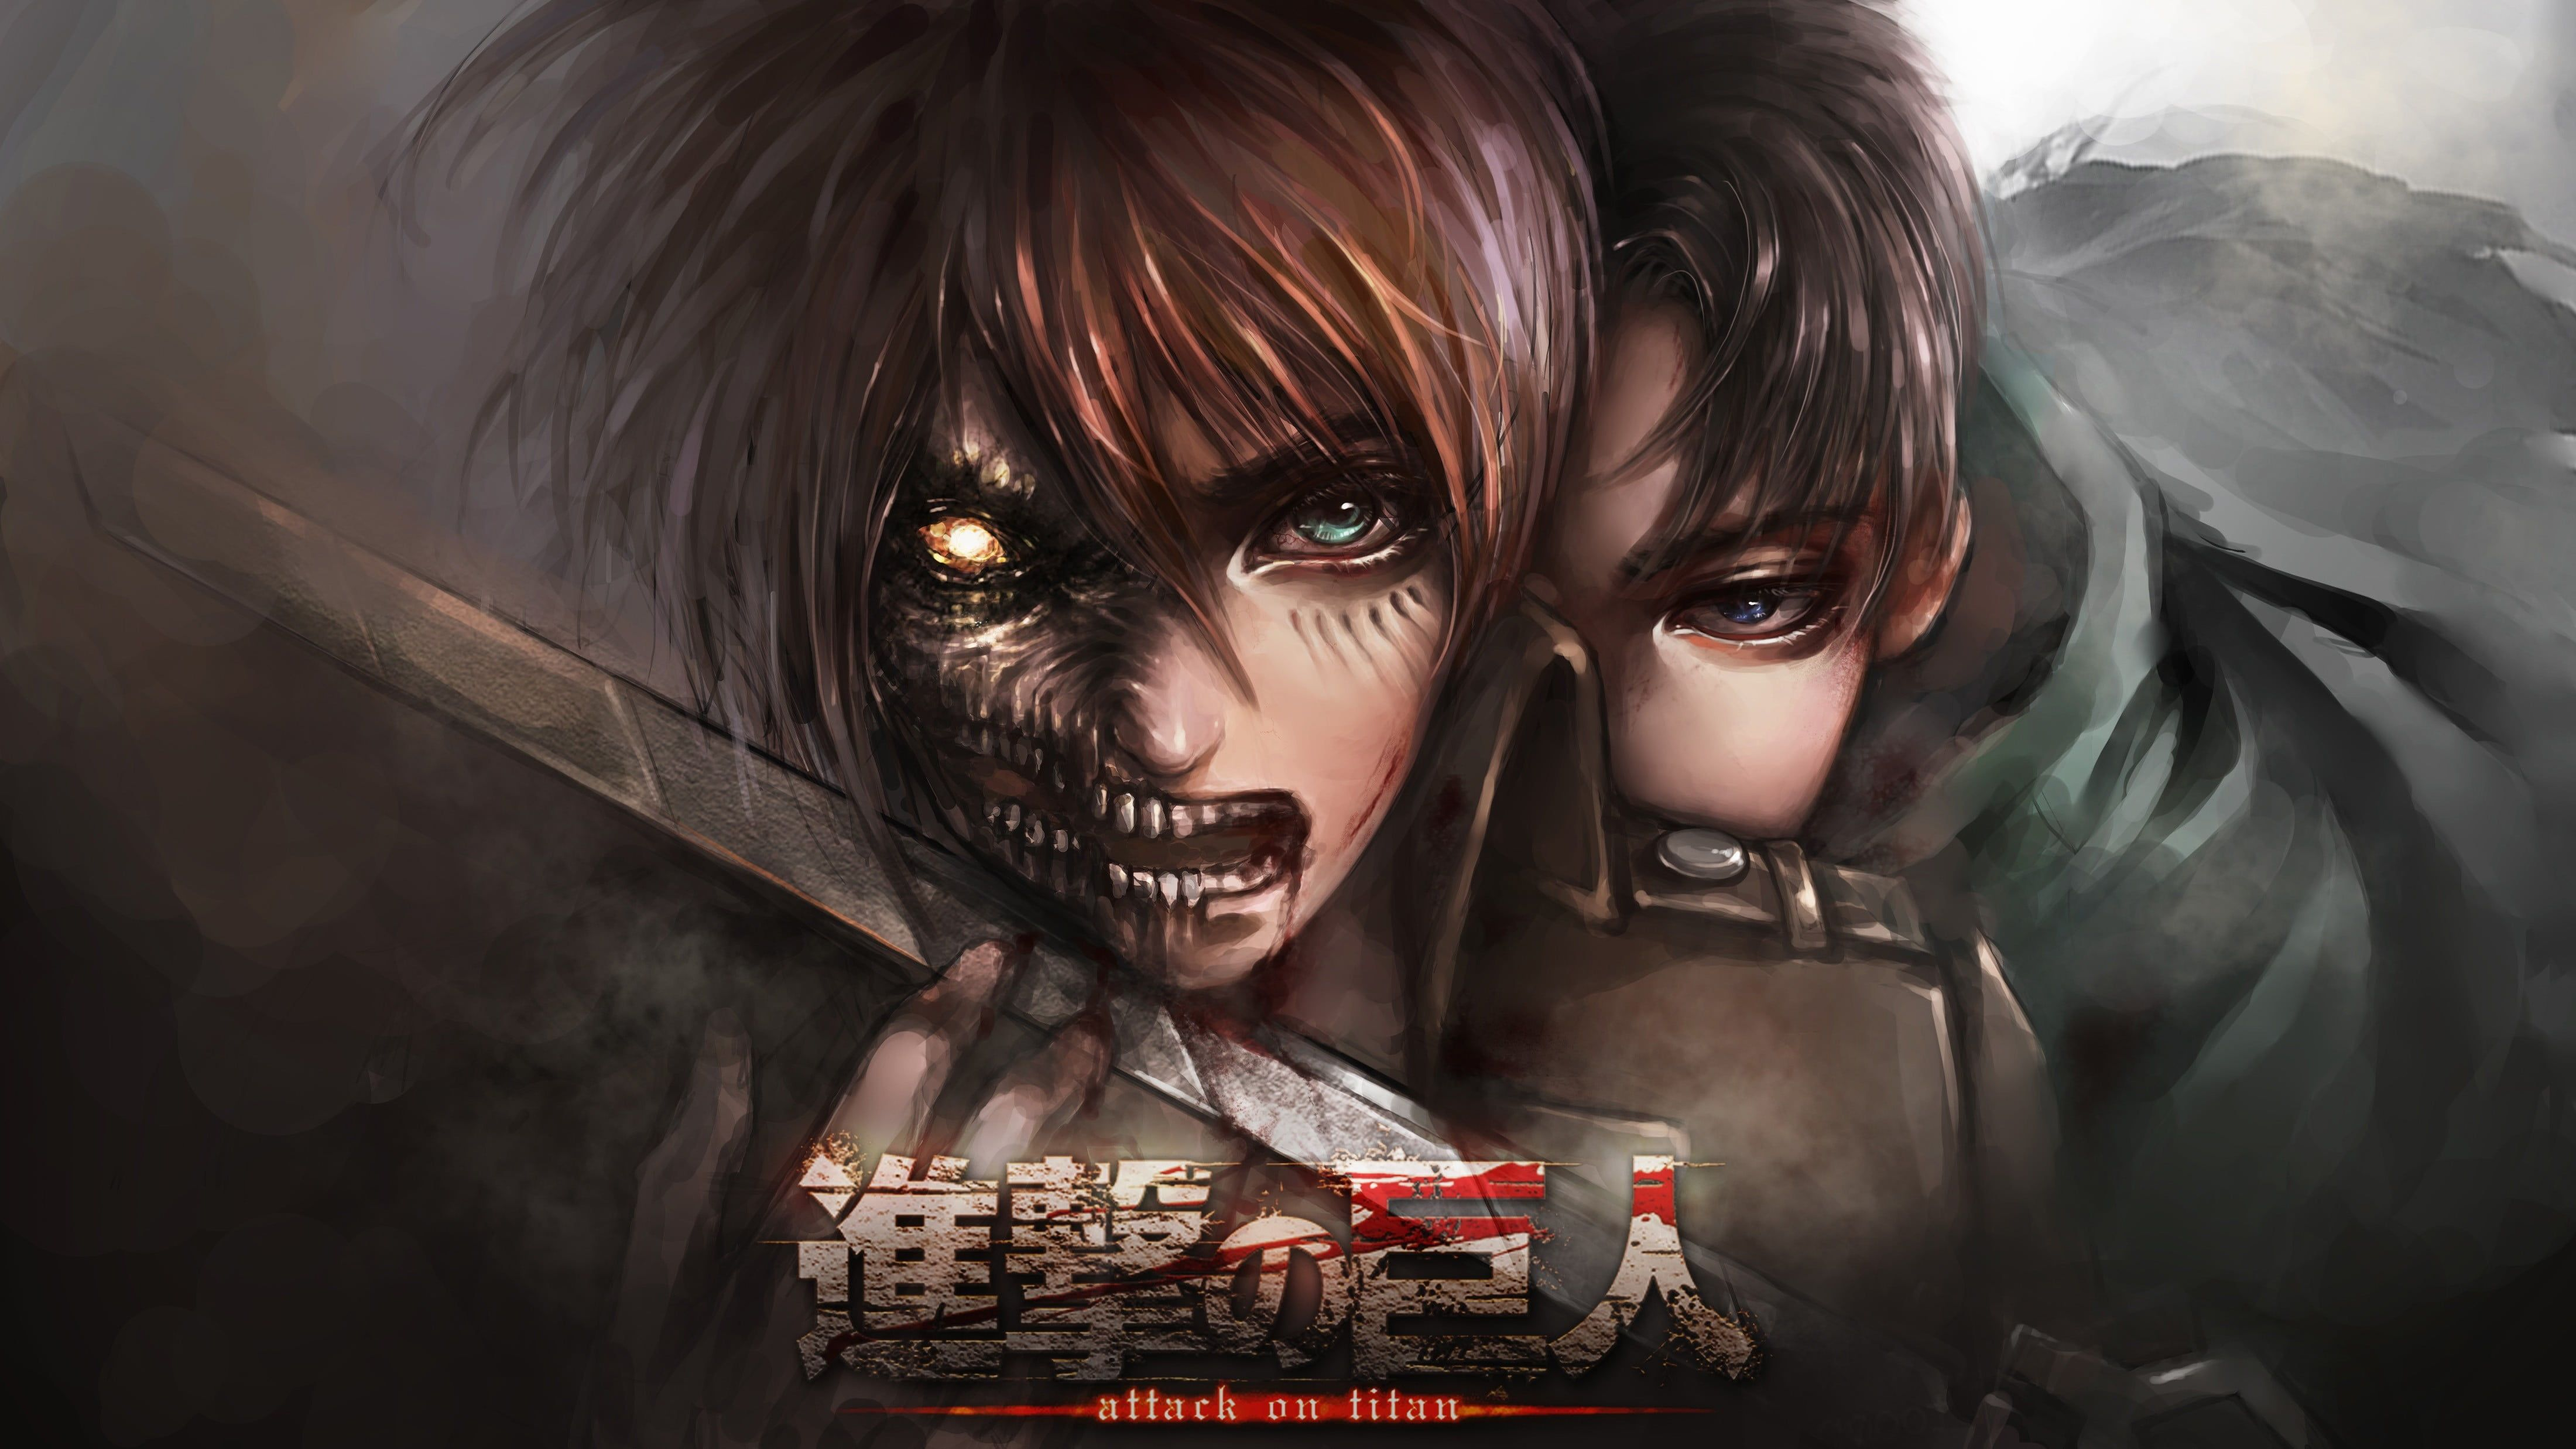 Advertisement platforms categories 1.0 user rating4 1/4 attack on titan 2 is an rpg available on windows that further unfolds the story from the original. Attack On Titan Season 4 Desktop Wallpapers - Wallpaper Cave